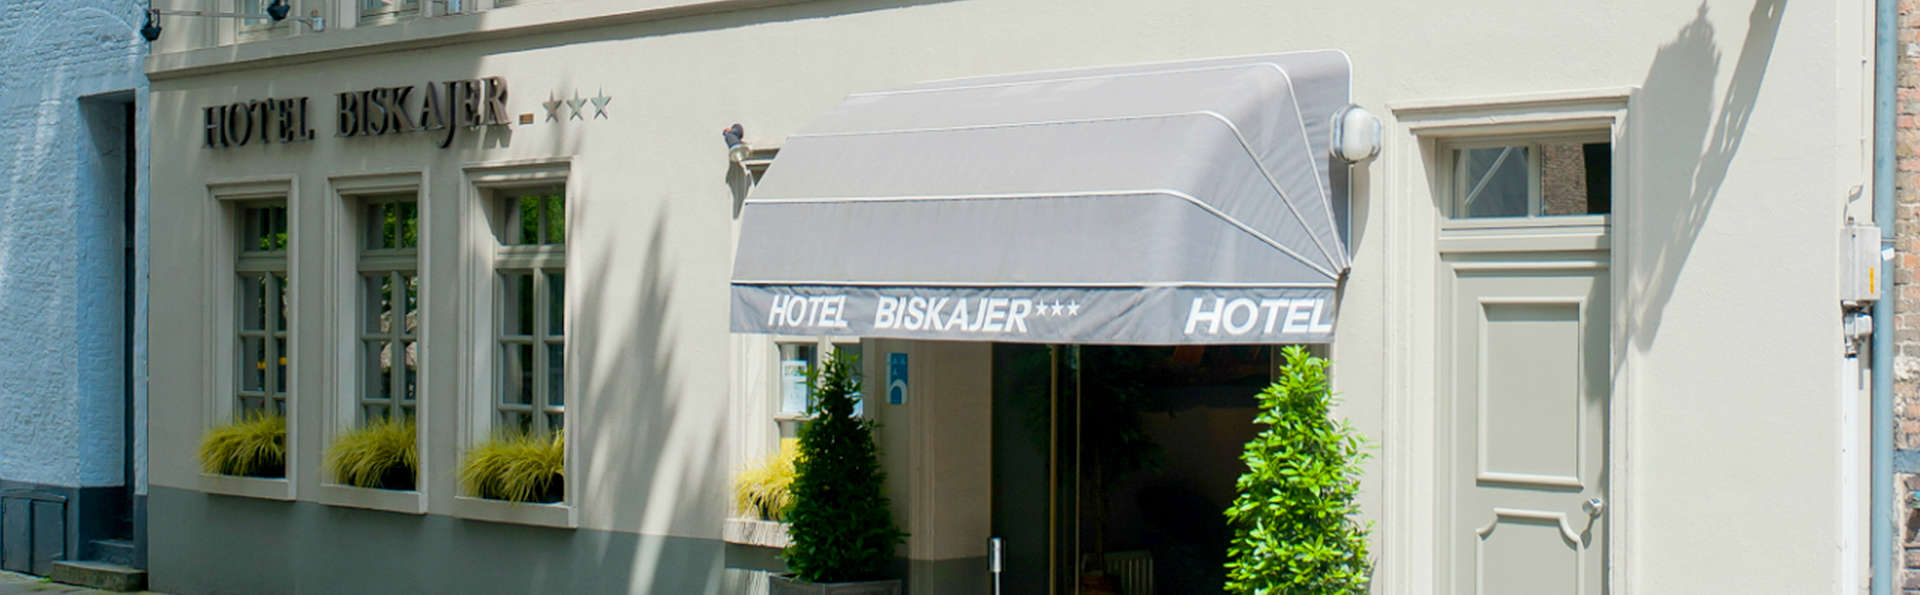 Hotel Biskajer Adults Only - EDIT_Exterior.jpg